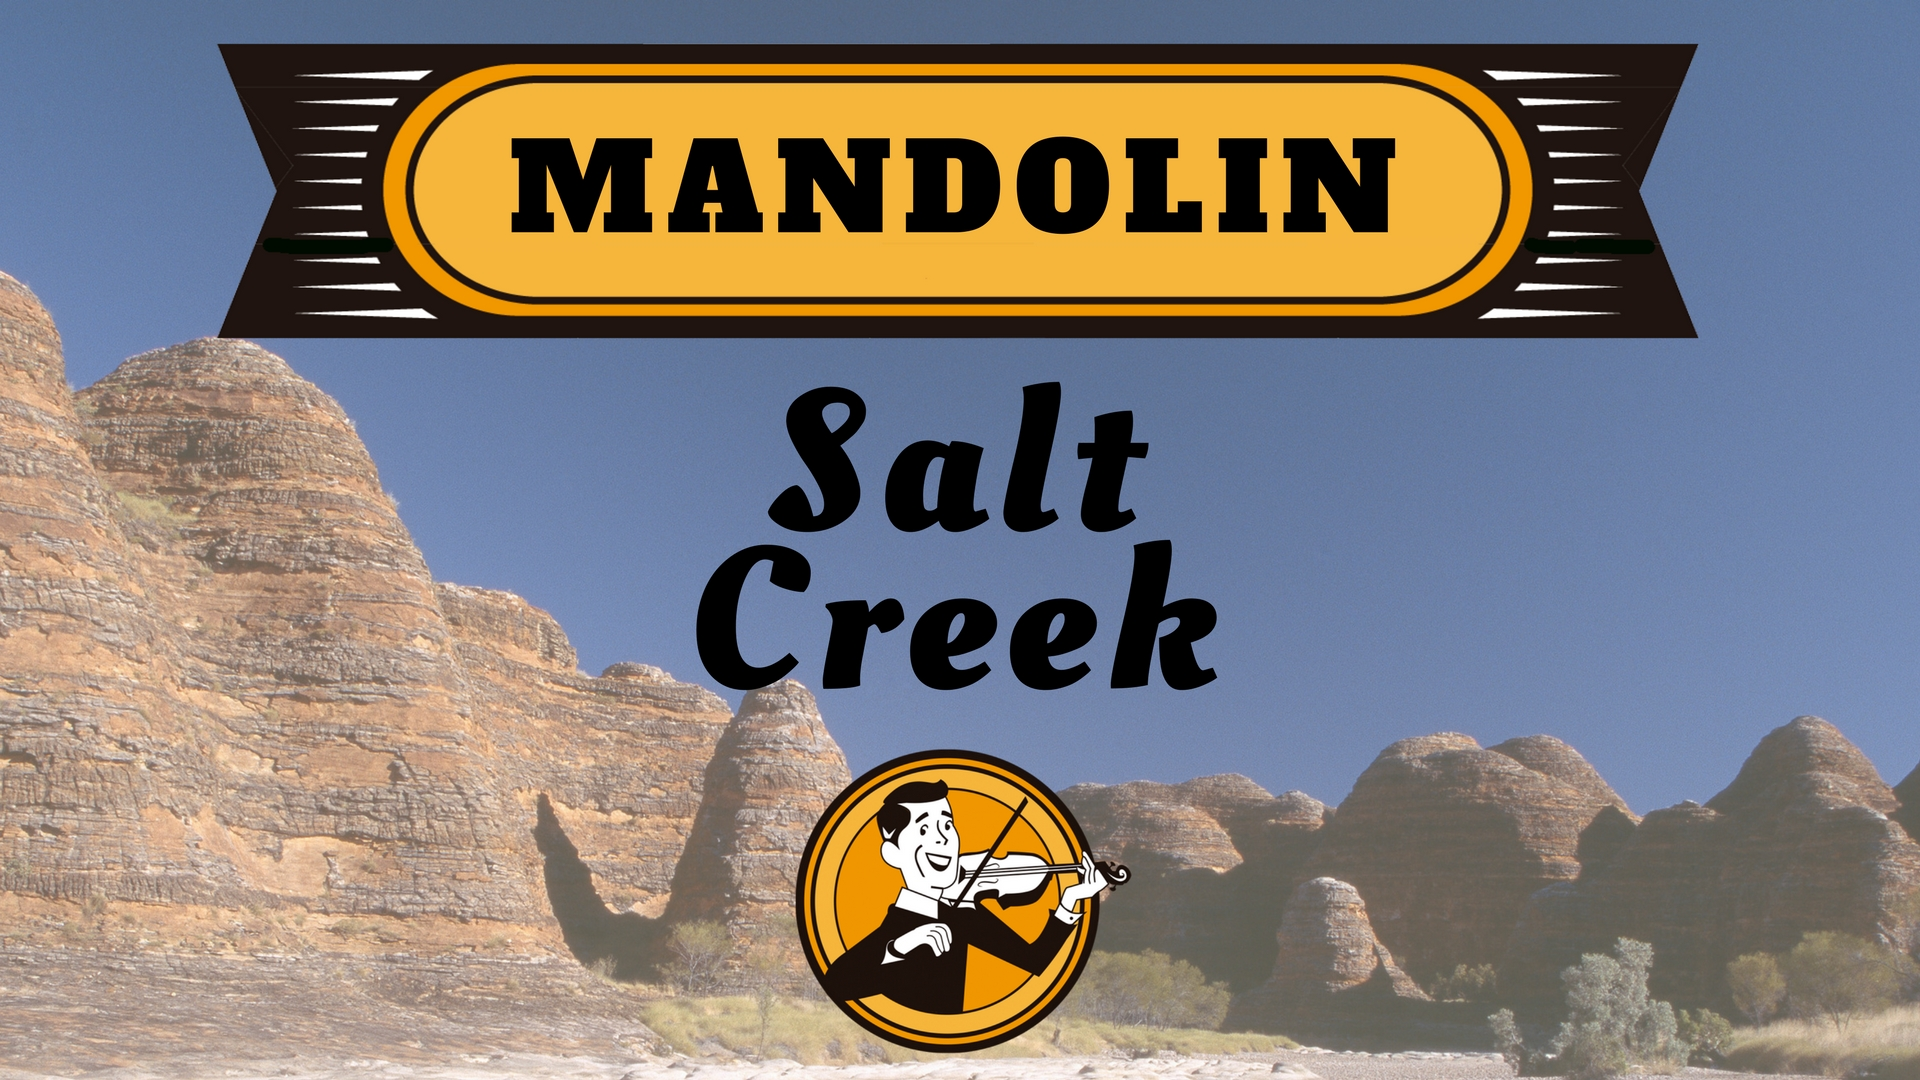 Mandolin Salt Creek